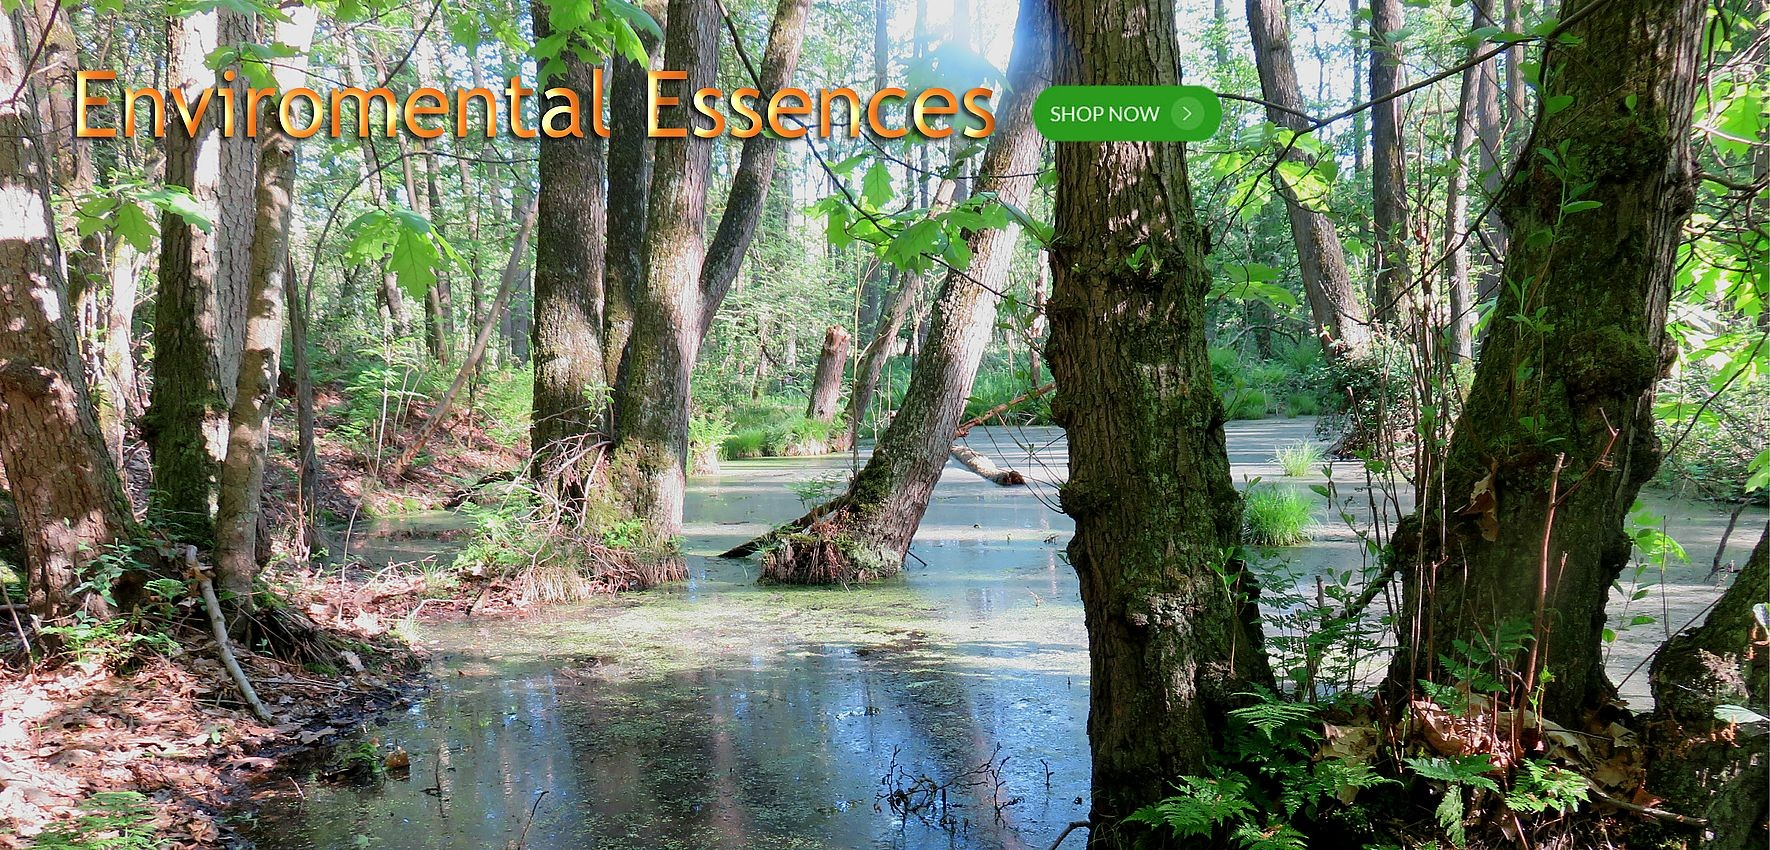 Environmental Essences